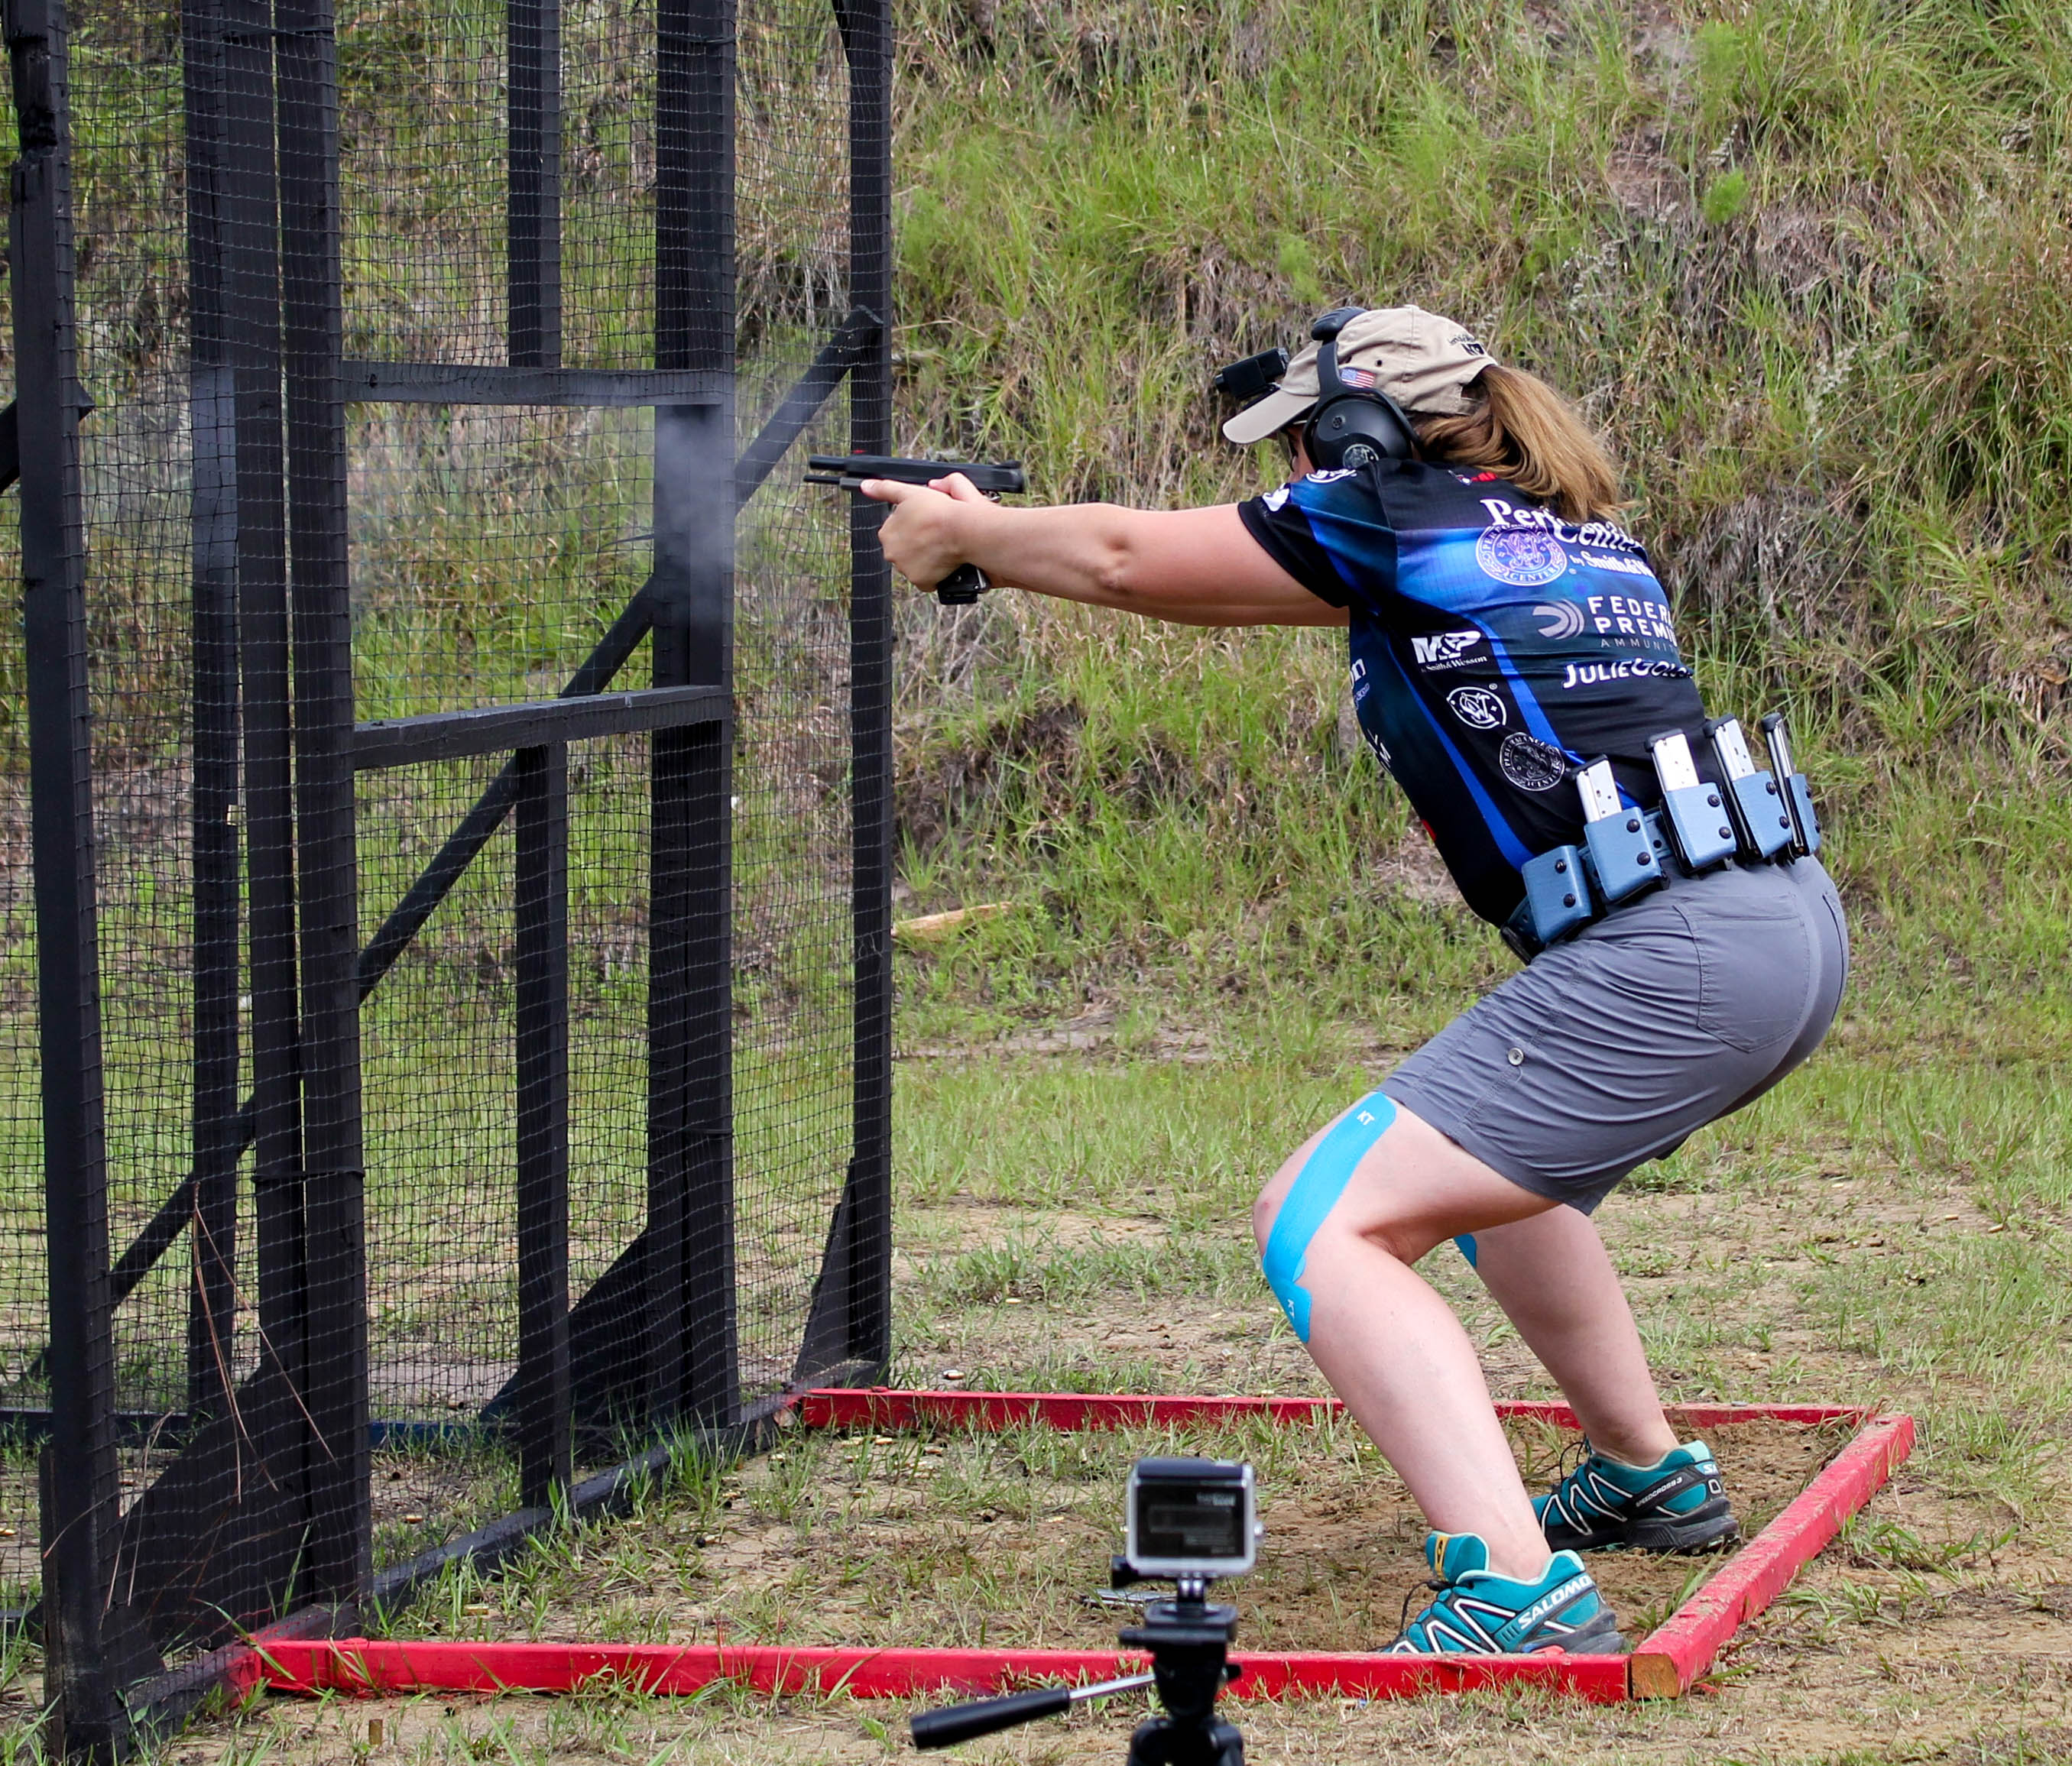 Julie Golob Awarded U.S. IPSC Ladies National Title in Classic 1911 Division